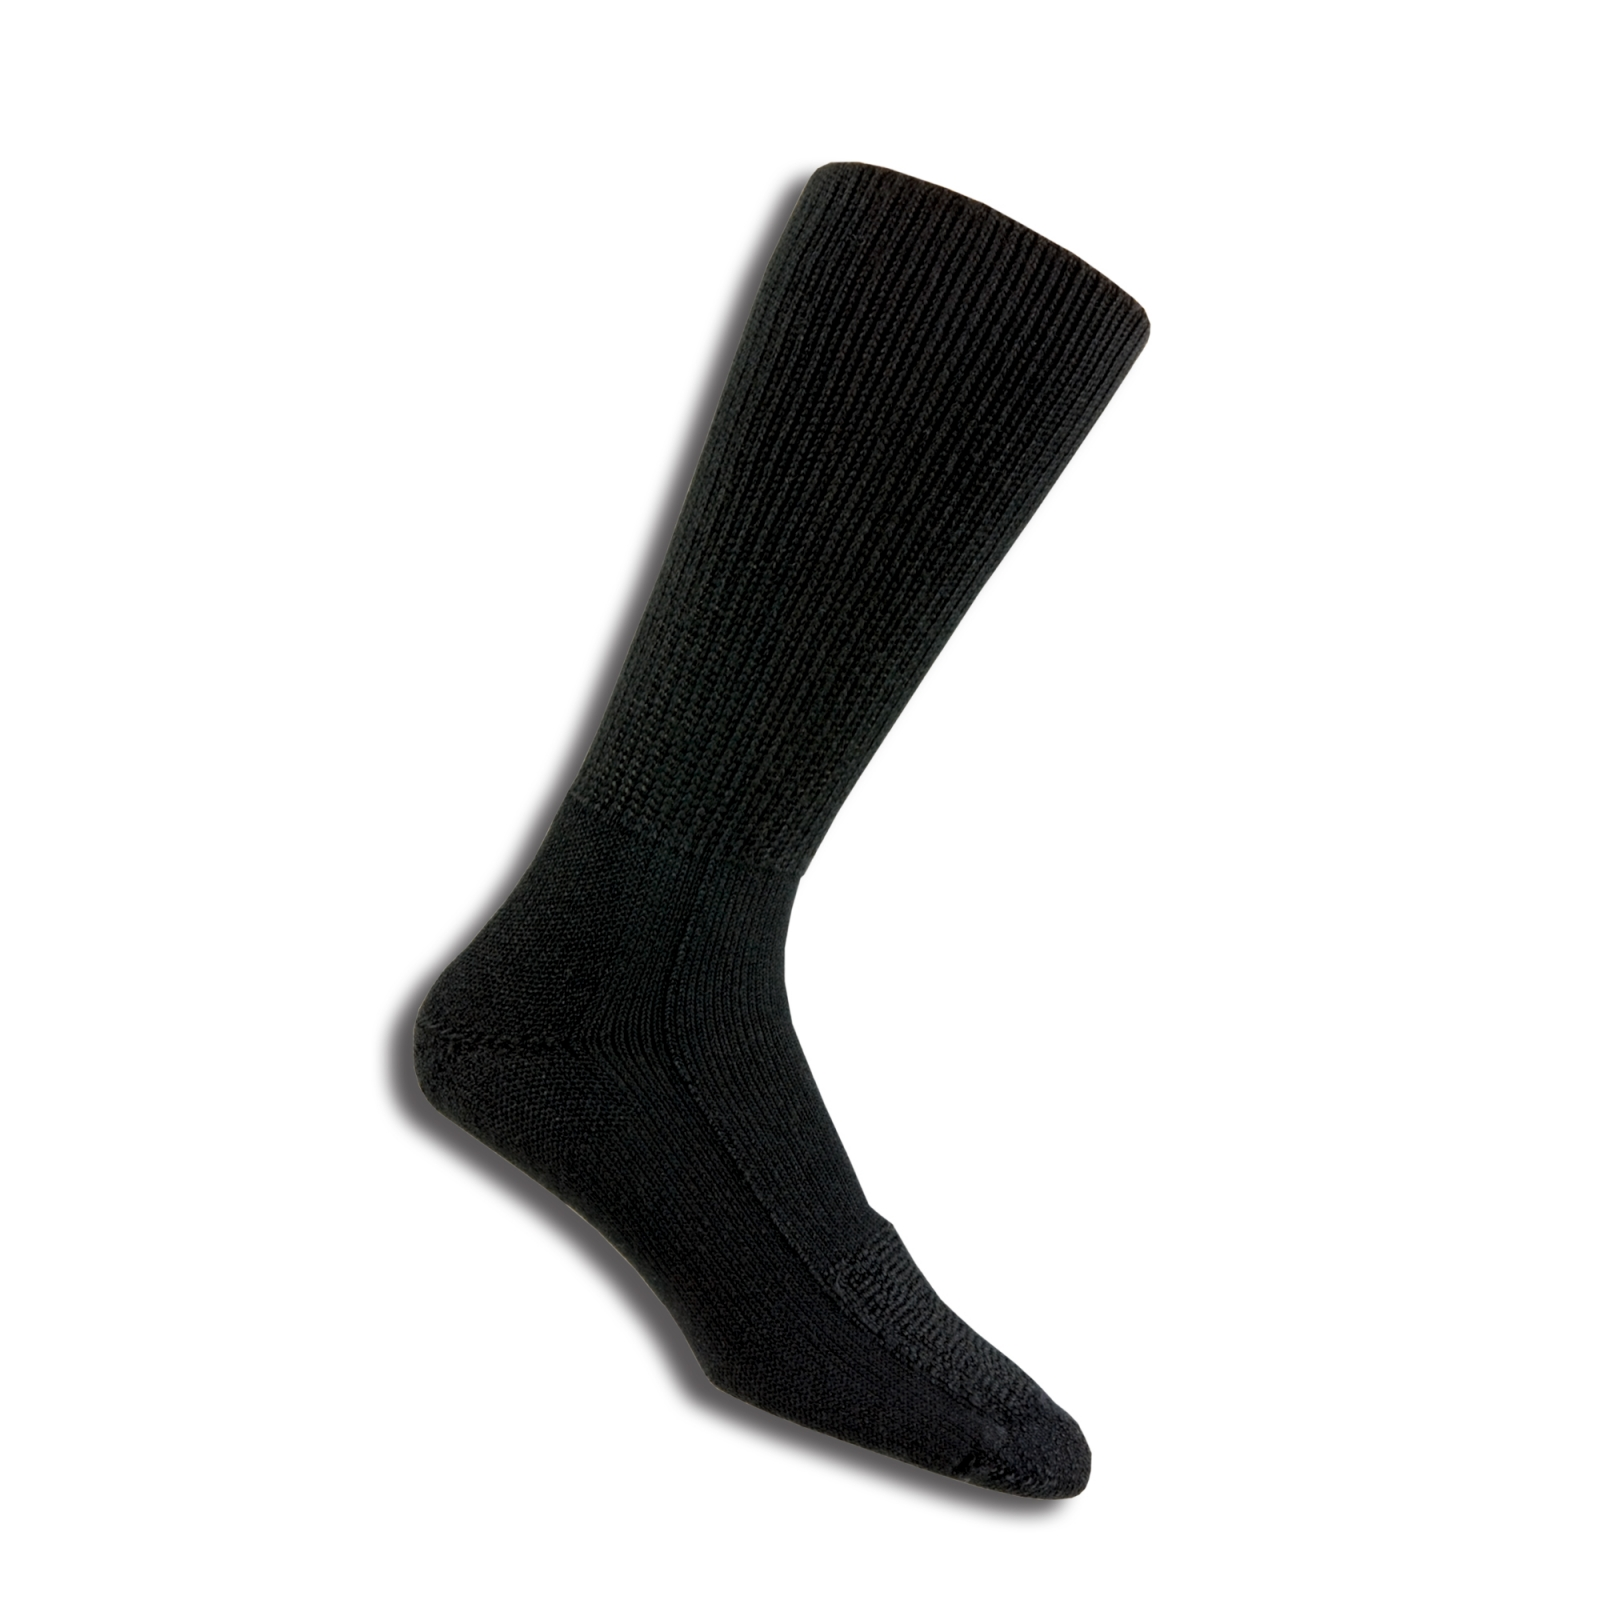 WLST Safety Steel Toe Socks Mid-Calf